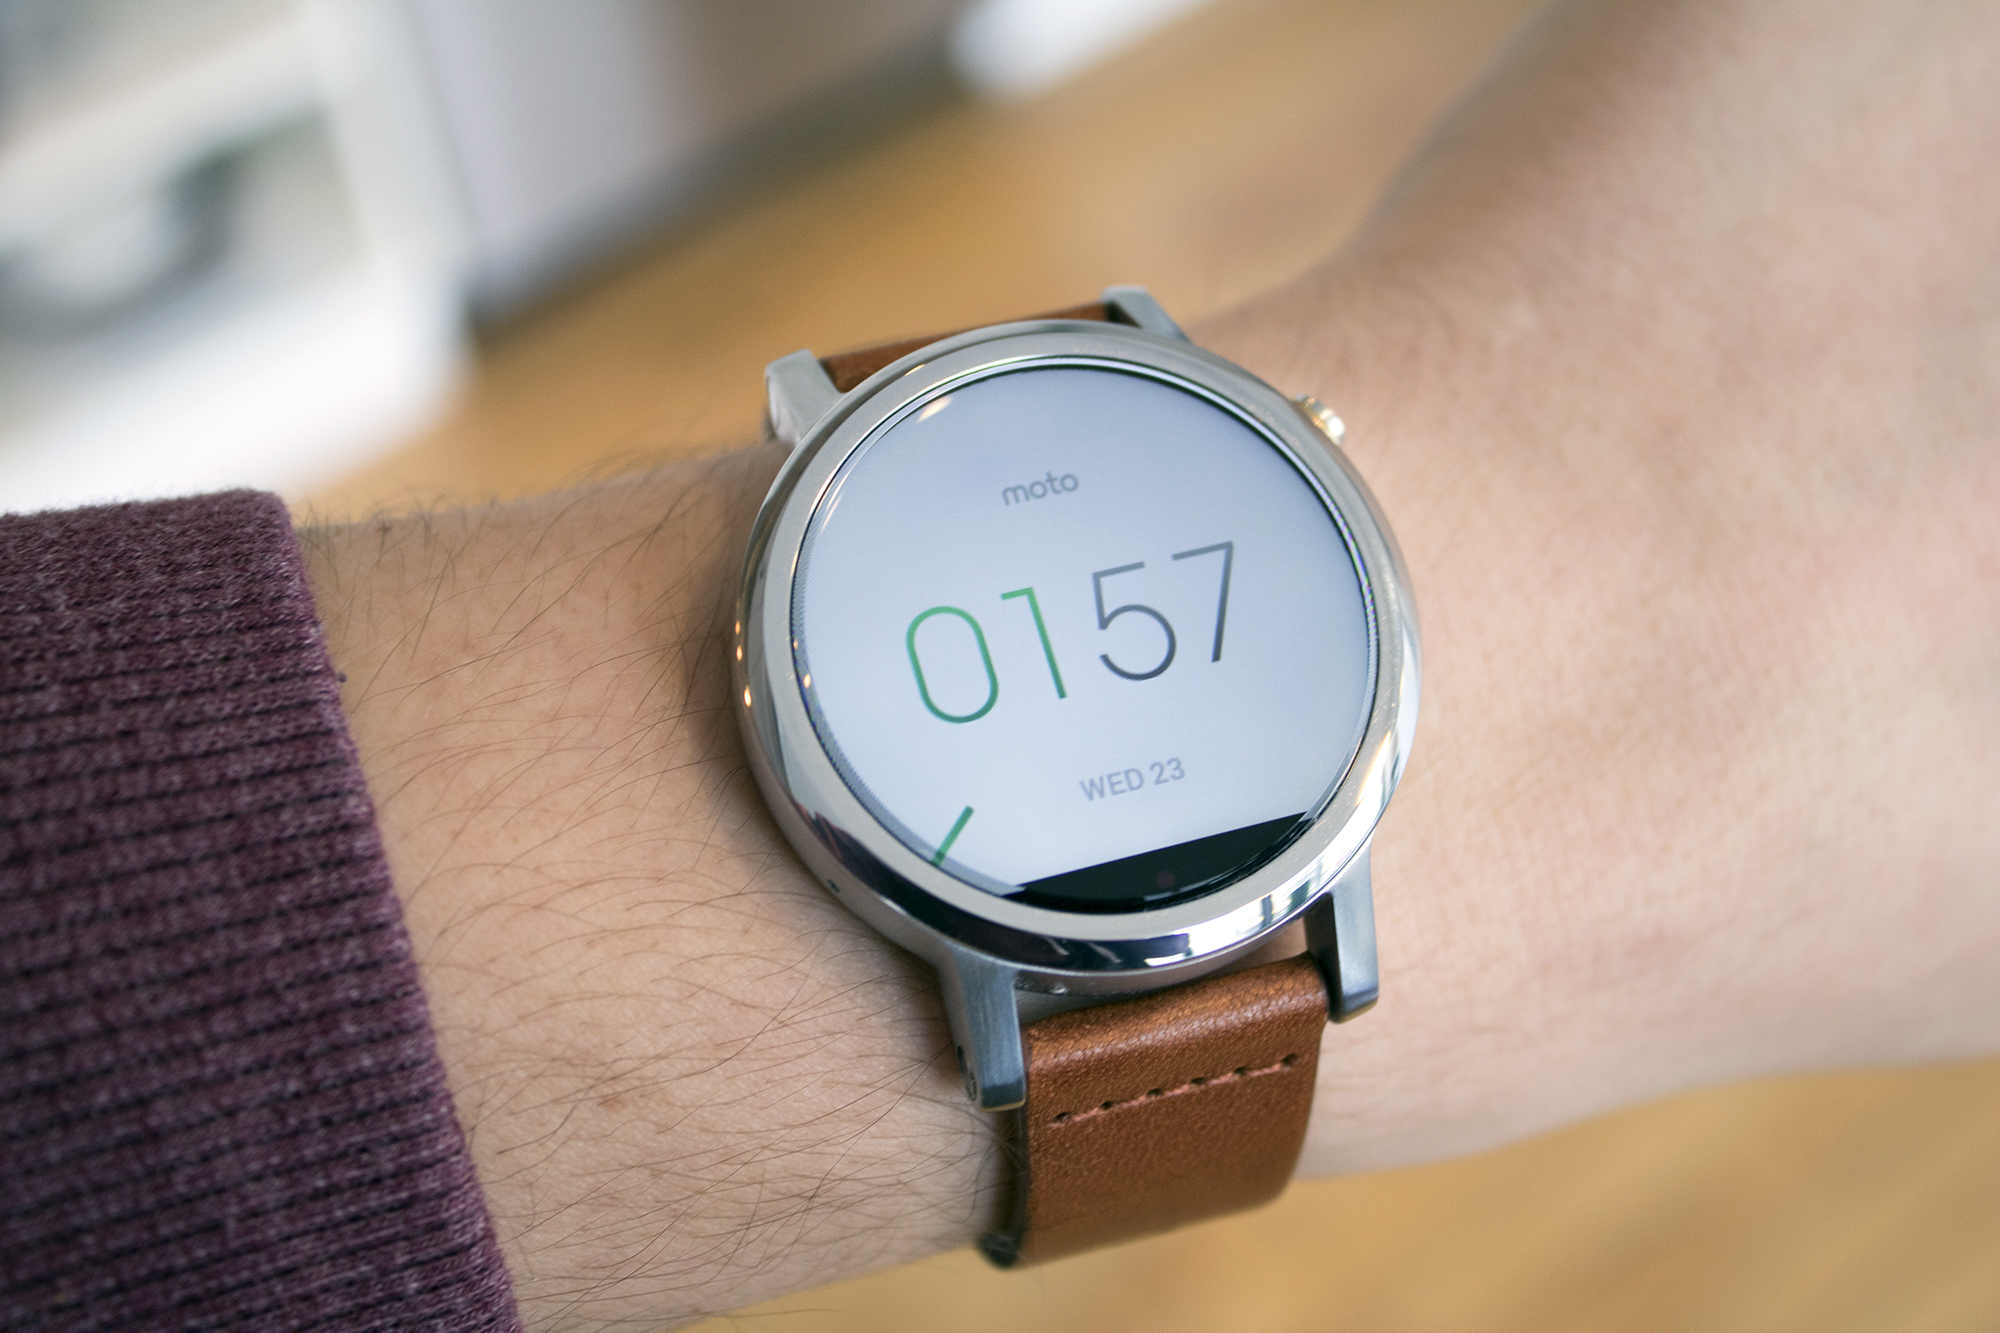 5 reasons to love the new Moto 360 smartwatch